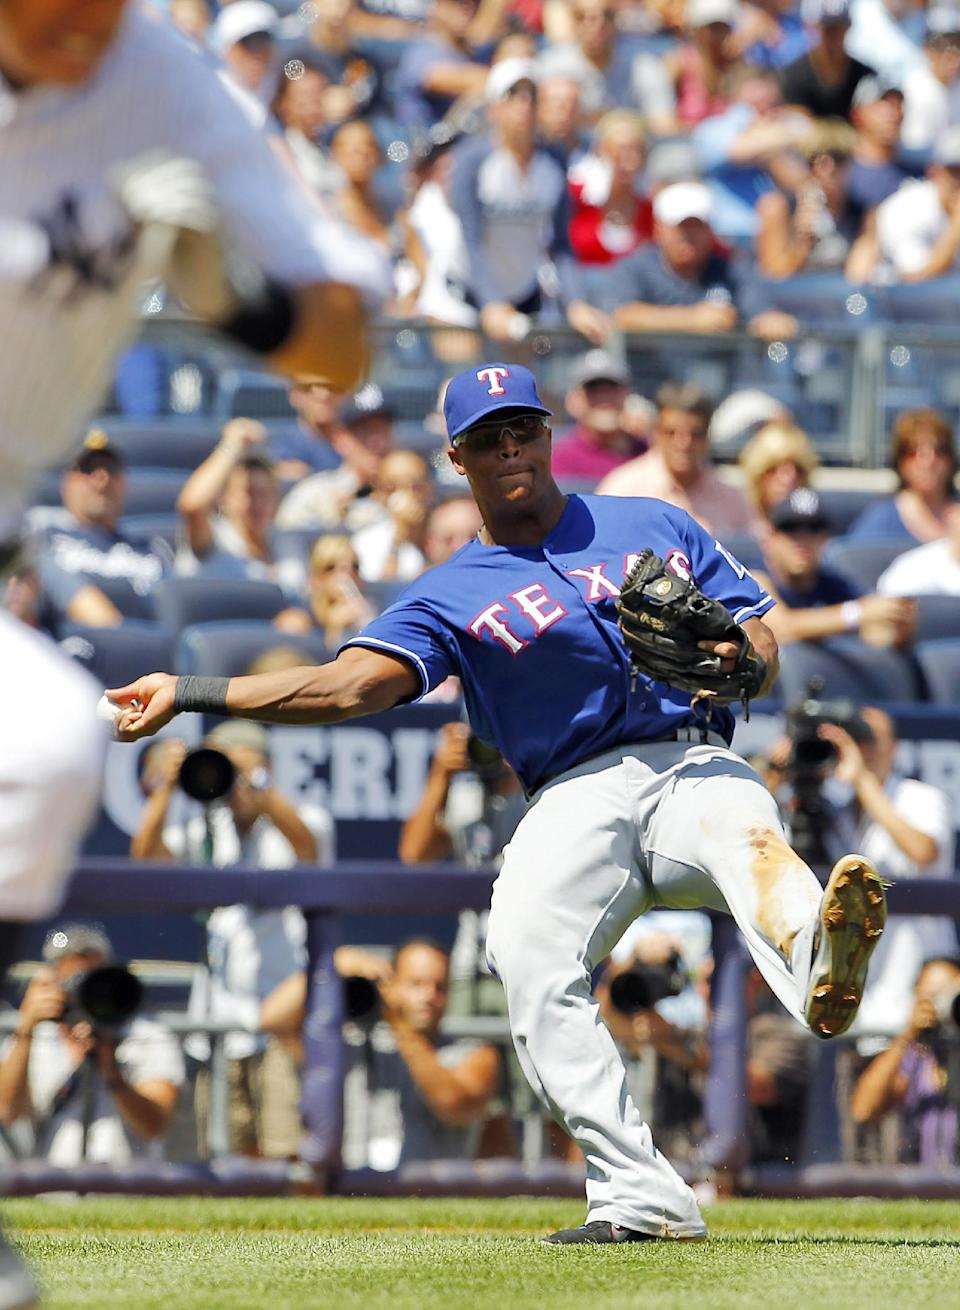 Texas Rangers' Adrian Beltre falls backward as he throws out New York Yankees' Ichiro Suzuki running to first base on a sacrifice bunt in the third inning of a baseball game at Yankee Stadium in New York, Thursday, Aug. 16, 2012. (AP Photo/Paul J. Bereswill)